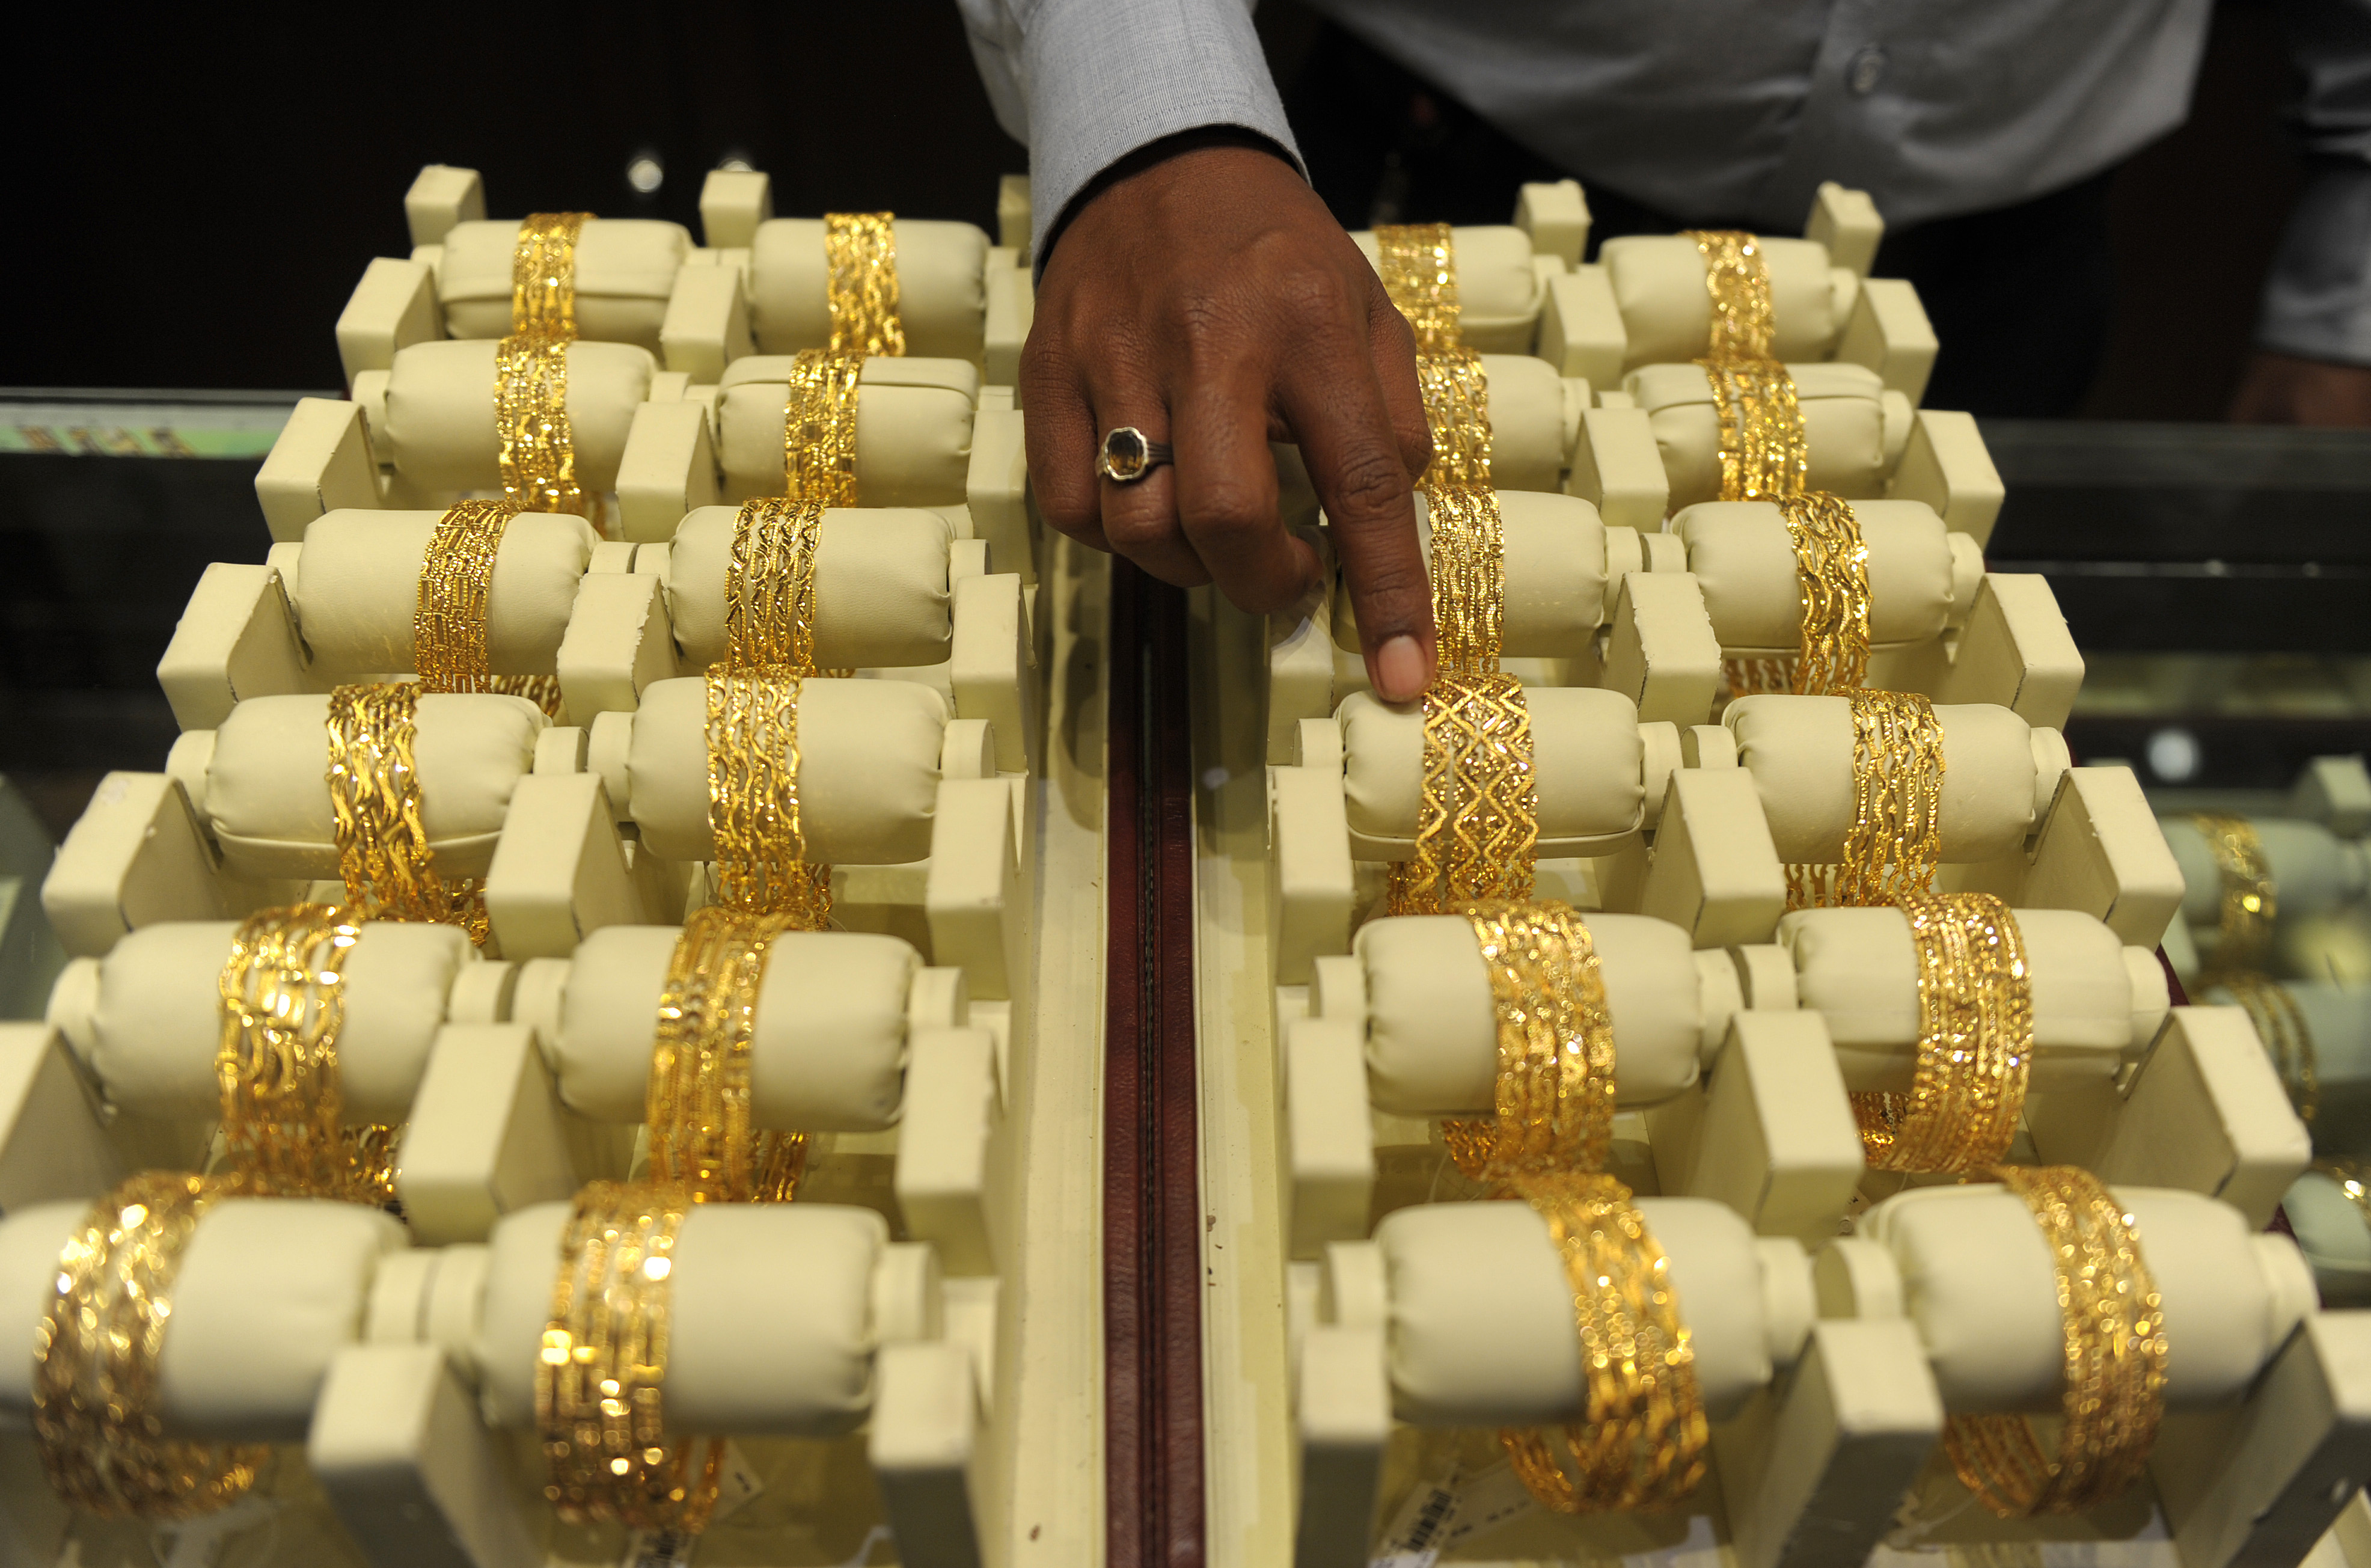 An Indian sales assistant arranges gold bangles in a jewelry shop in Hyderabad, India, on May 13, 2013